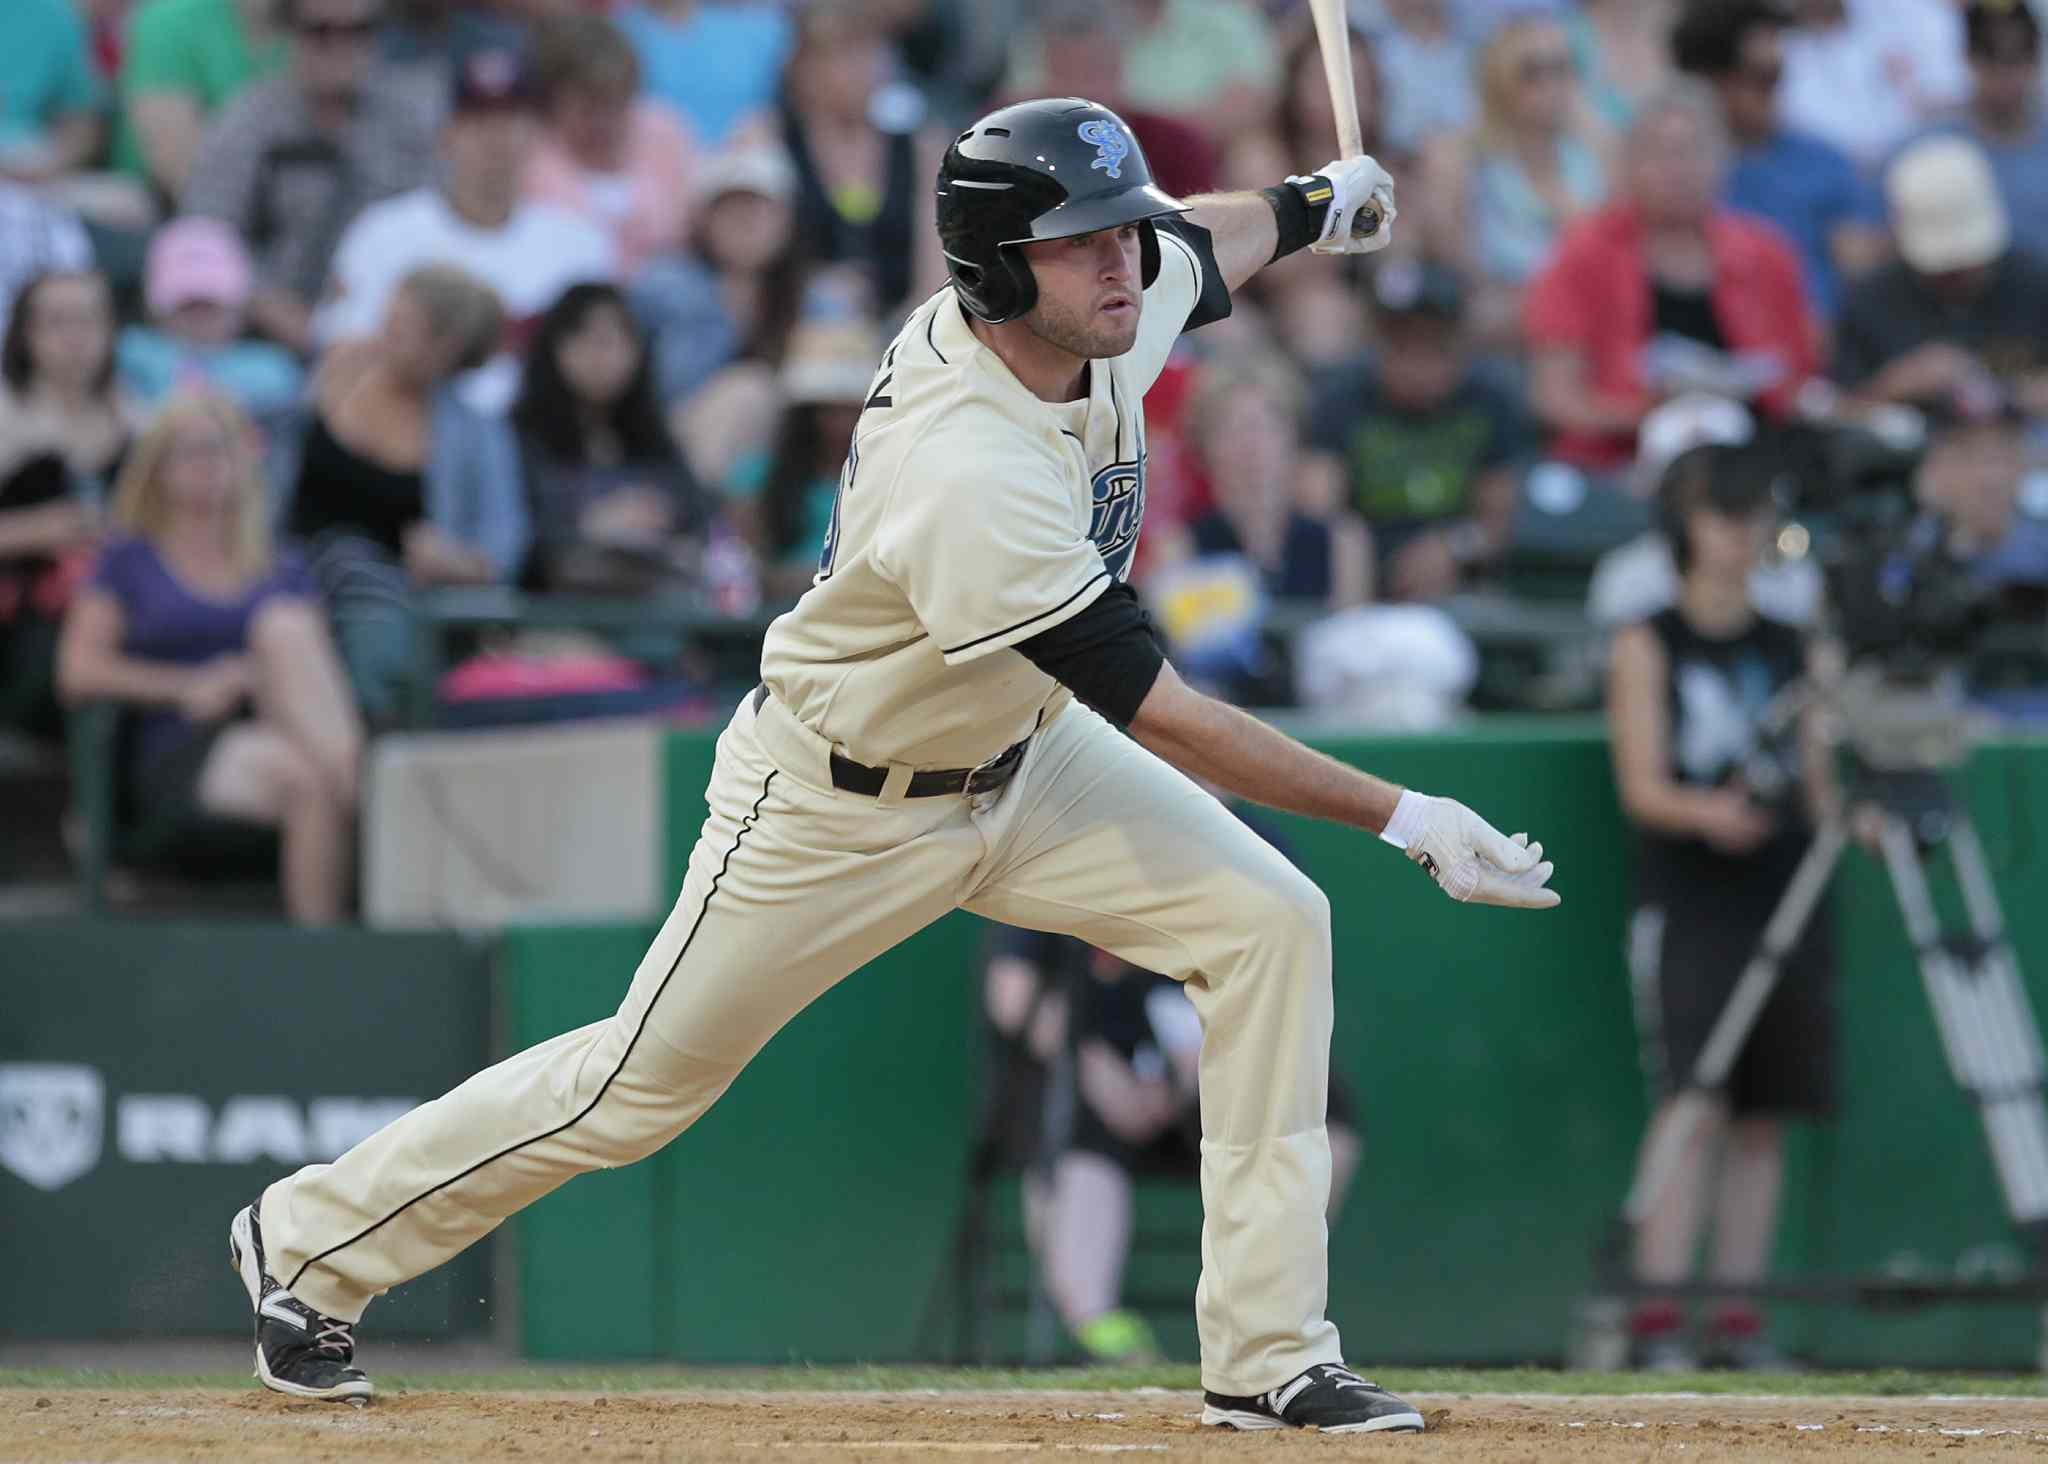 St. Paul Saints' Henry Wrigley hits during Tuesday's All-Star game at Shaw Park.